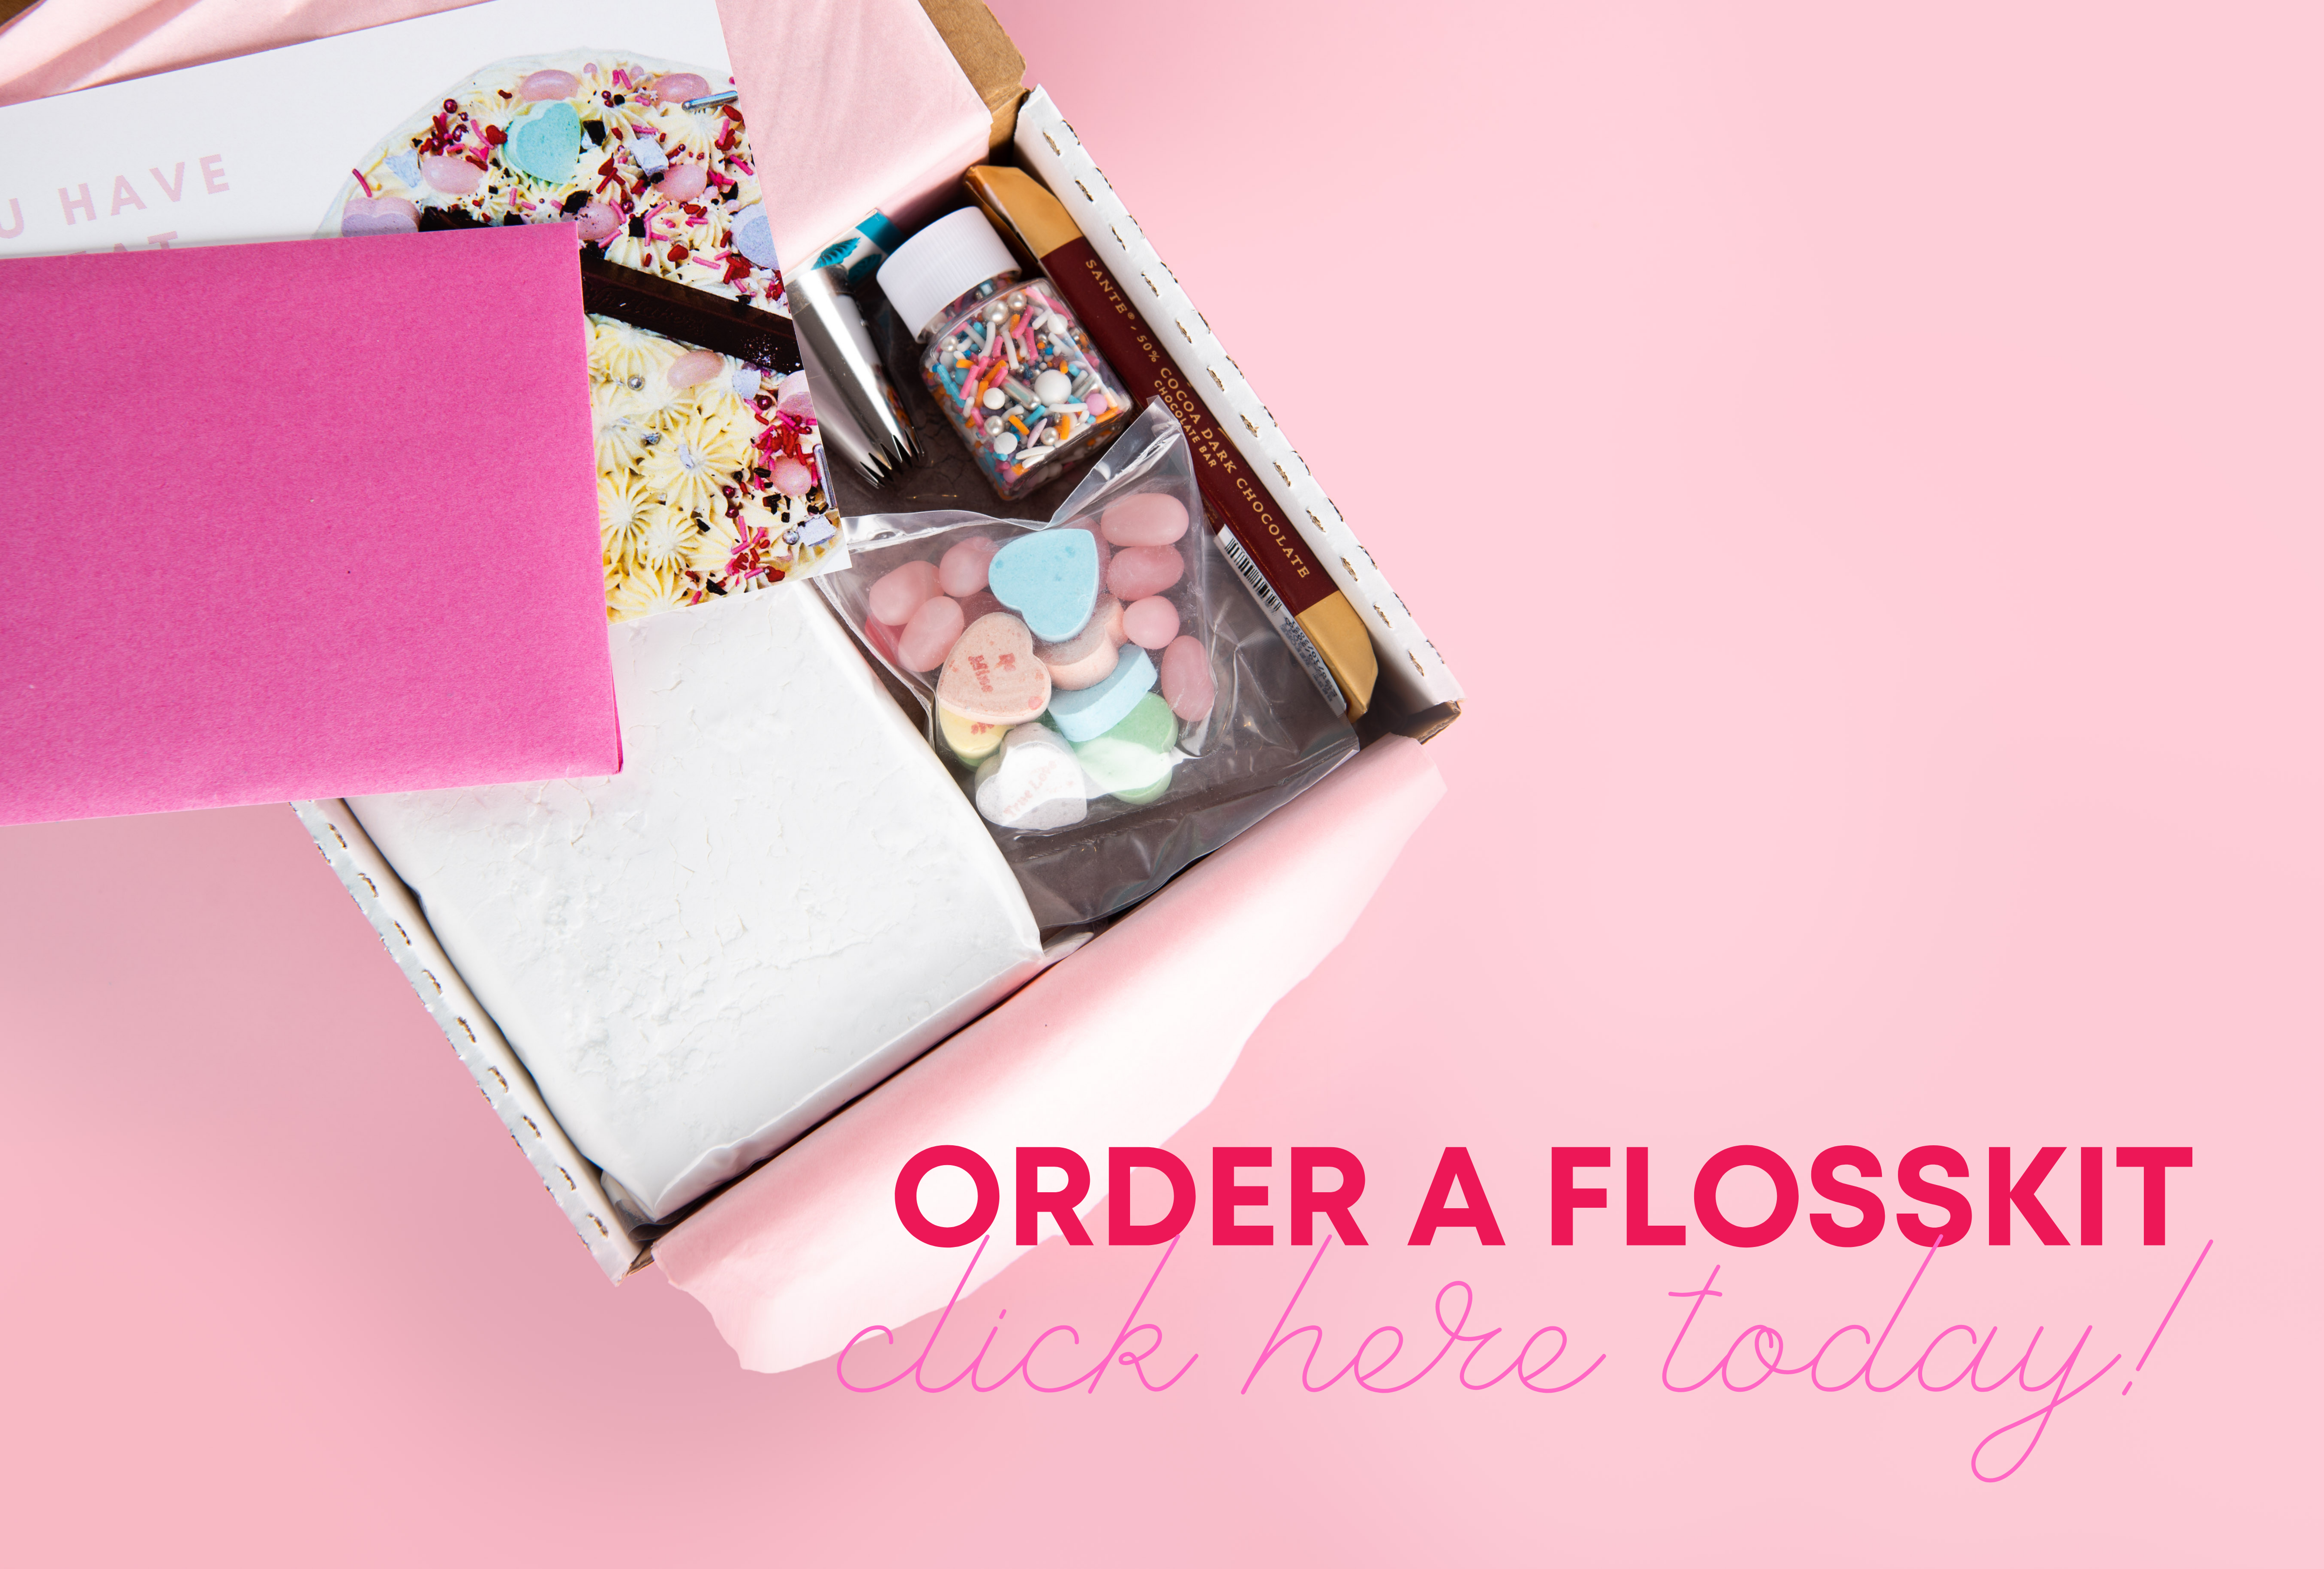 Flosskit - create your own cake